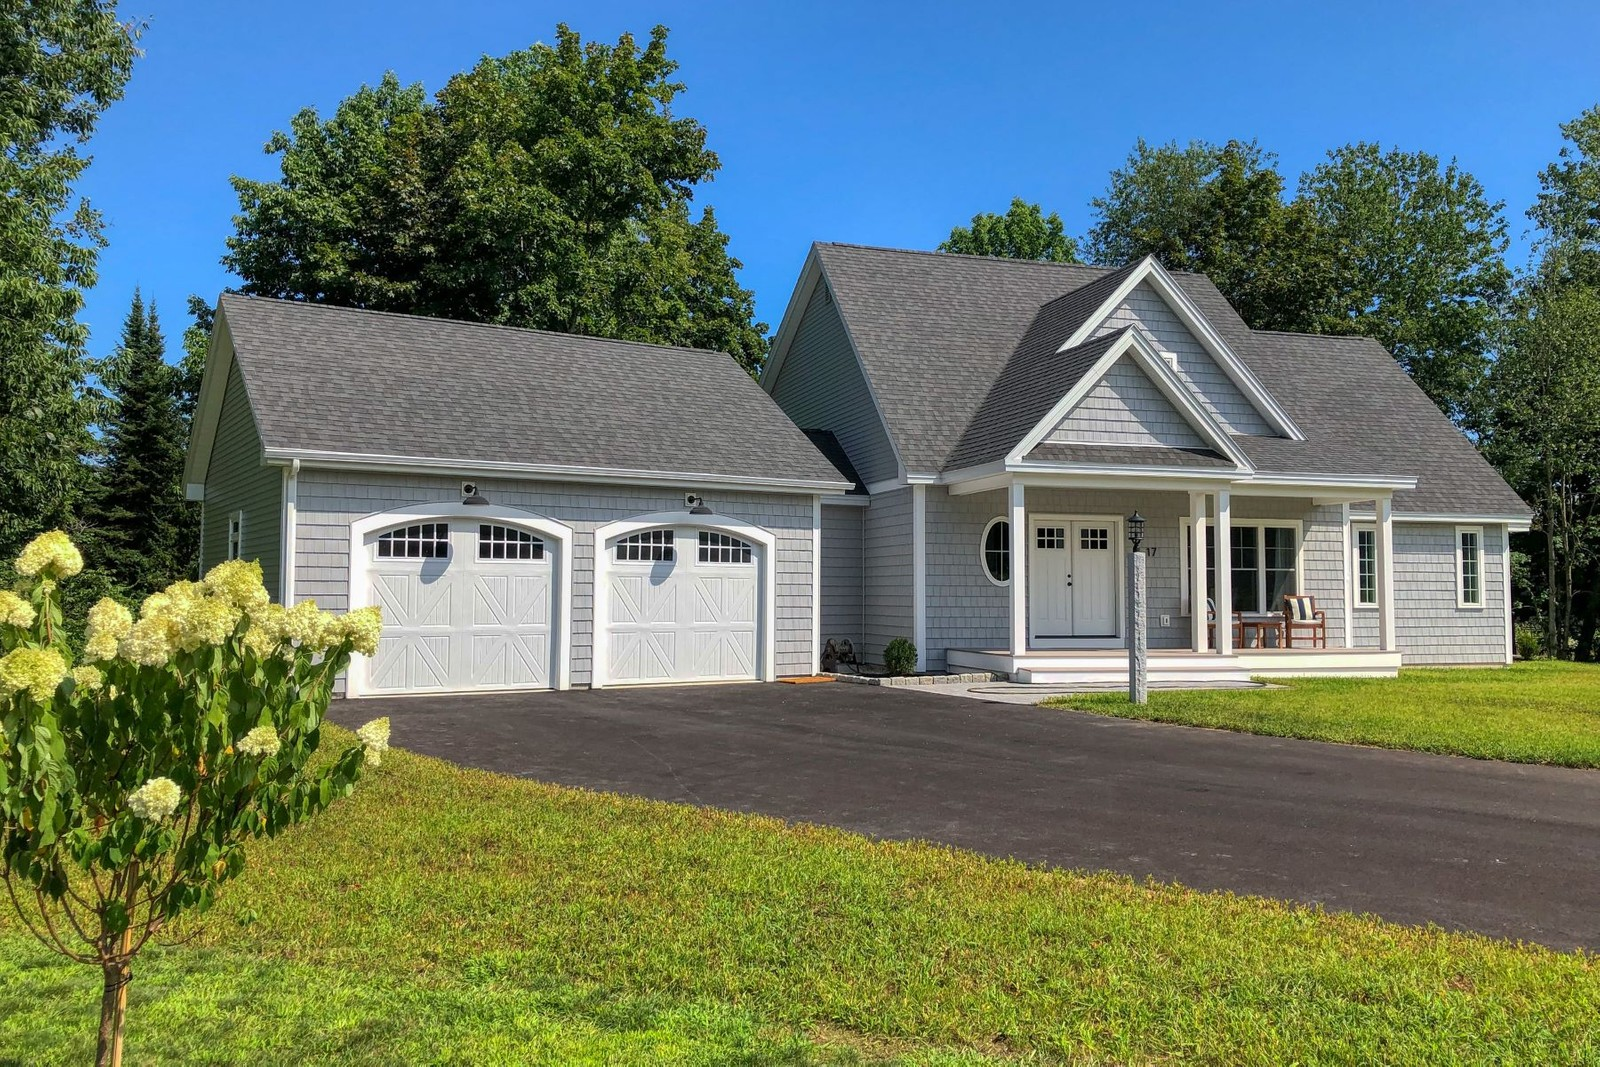 Single Family Homes for Sale at 10A Indian Woods Road Scarborough, Maine 04074 United States